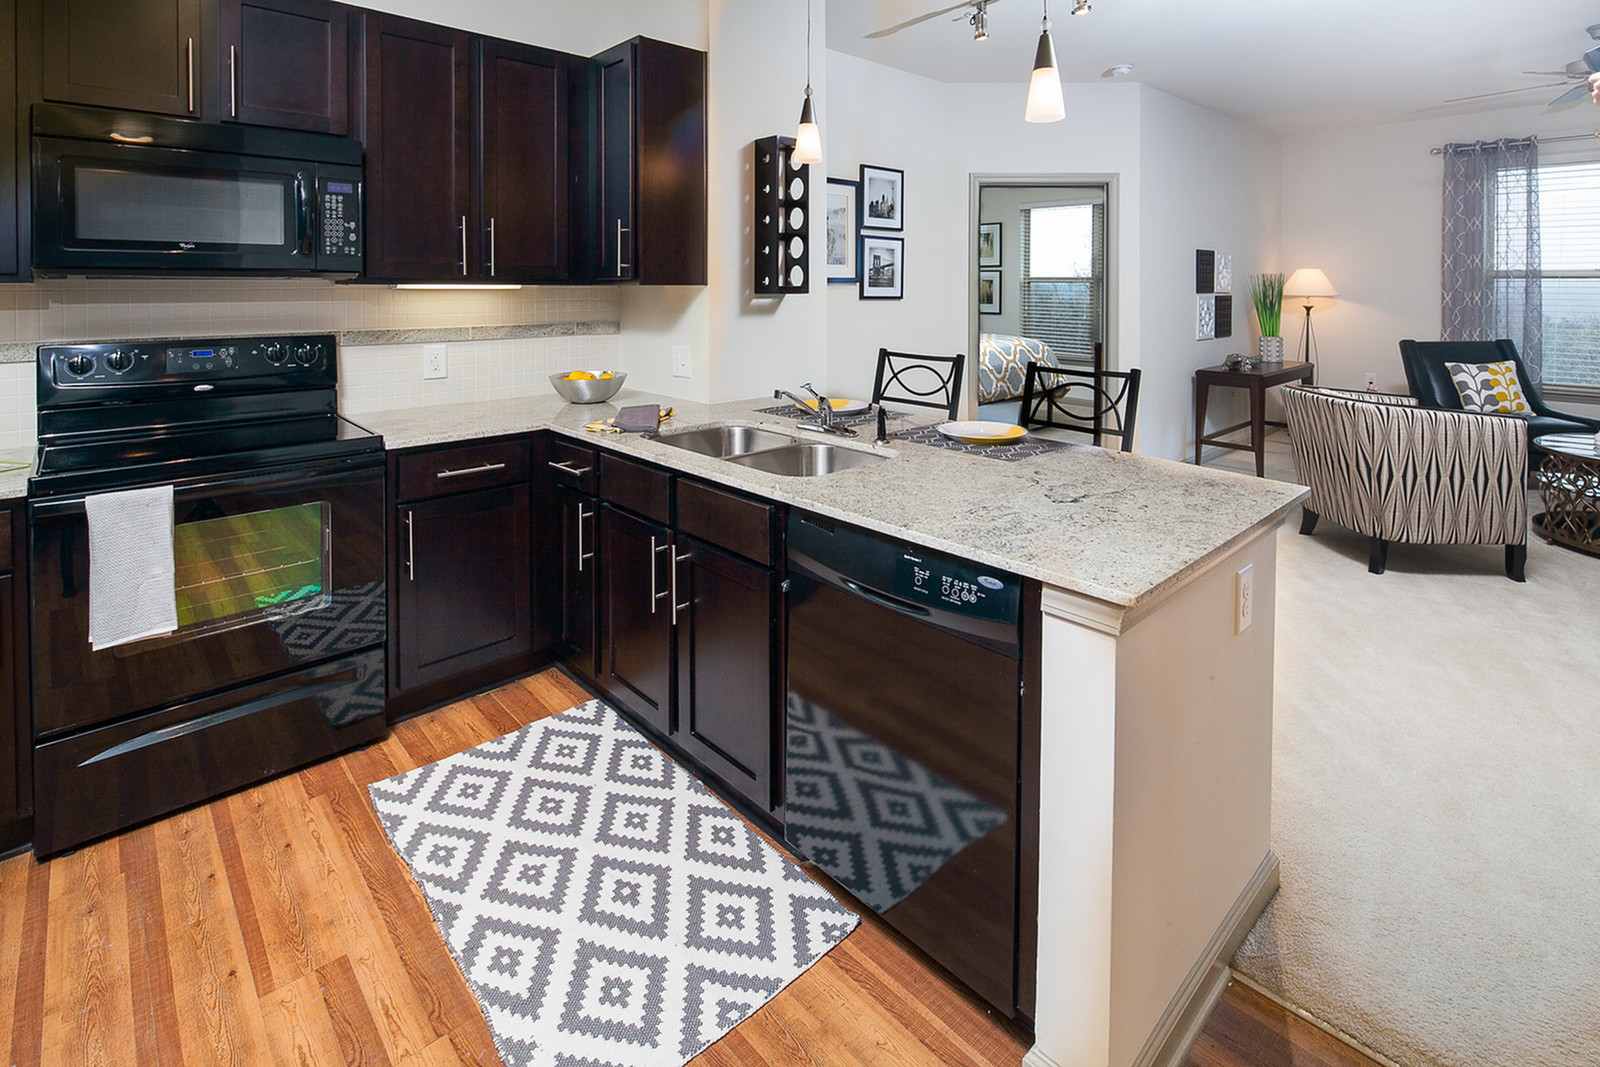 5611 sheldon road - Want To See More Take A Tour Through Our Beautiful Community And See What We Have To Offer